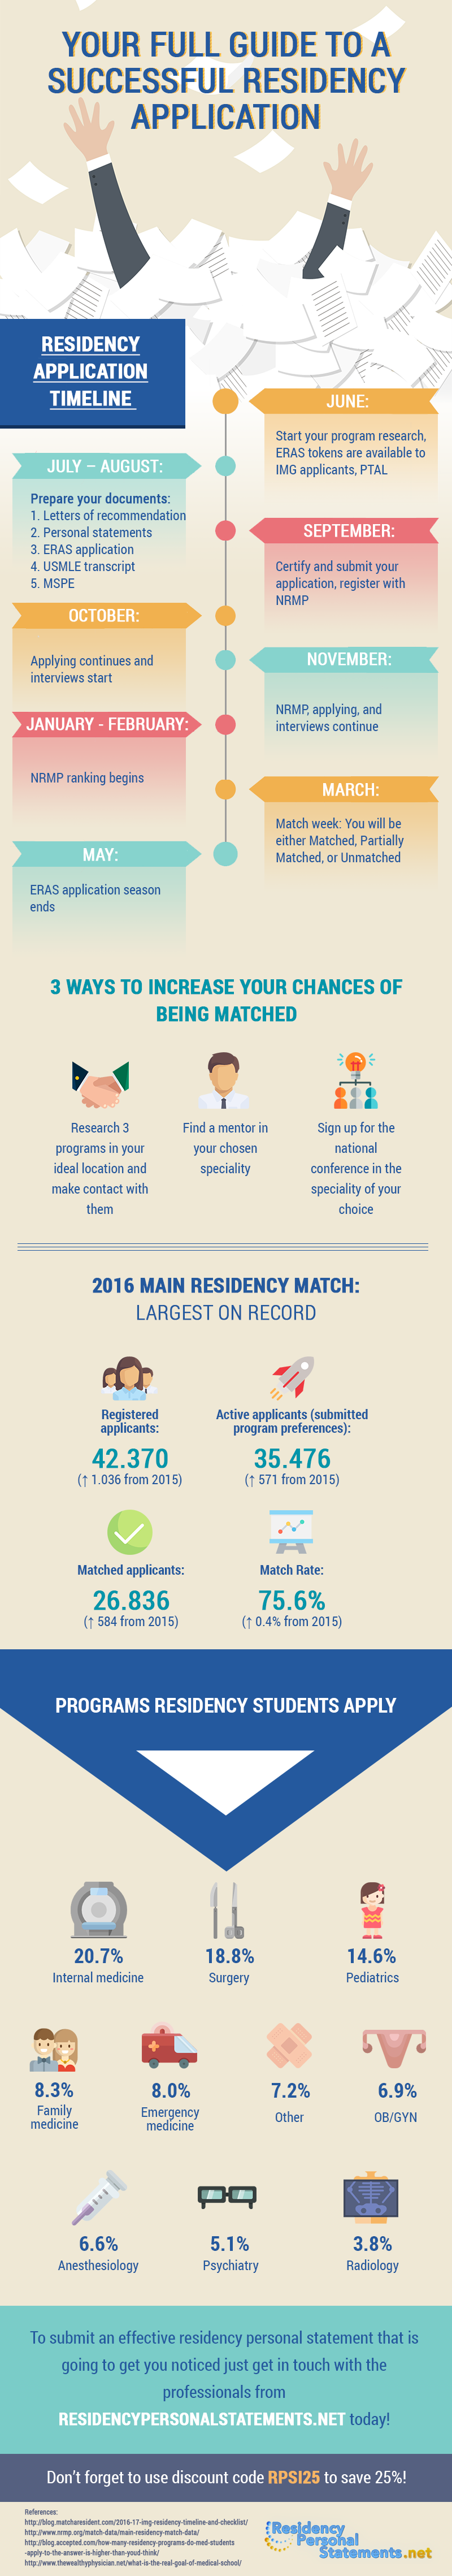 residency application process